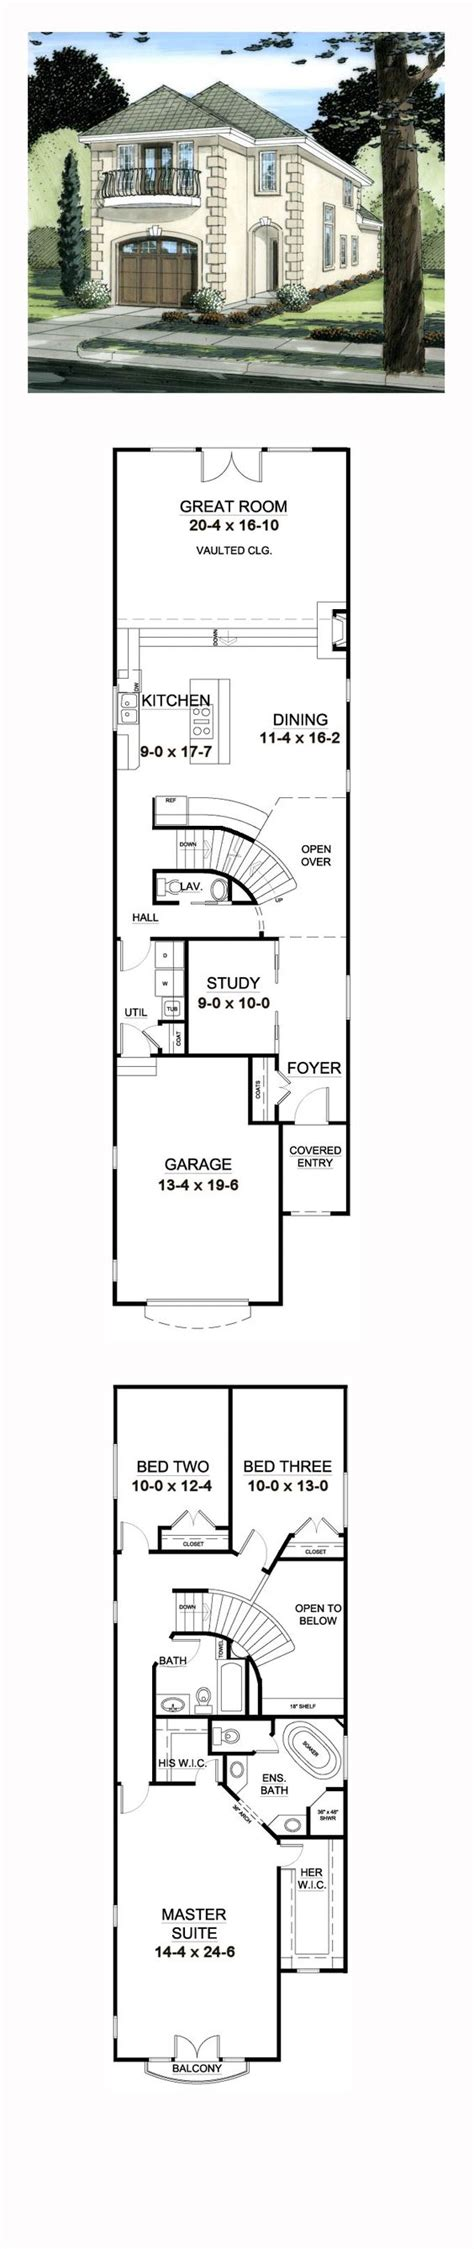 house plans for long narrow lots florida house plan 99997 house chang e 3 and narrow lot